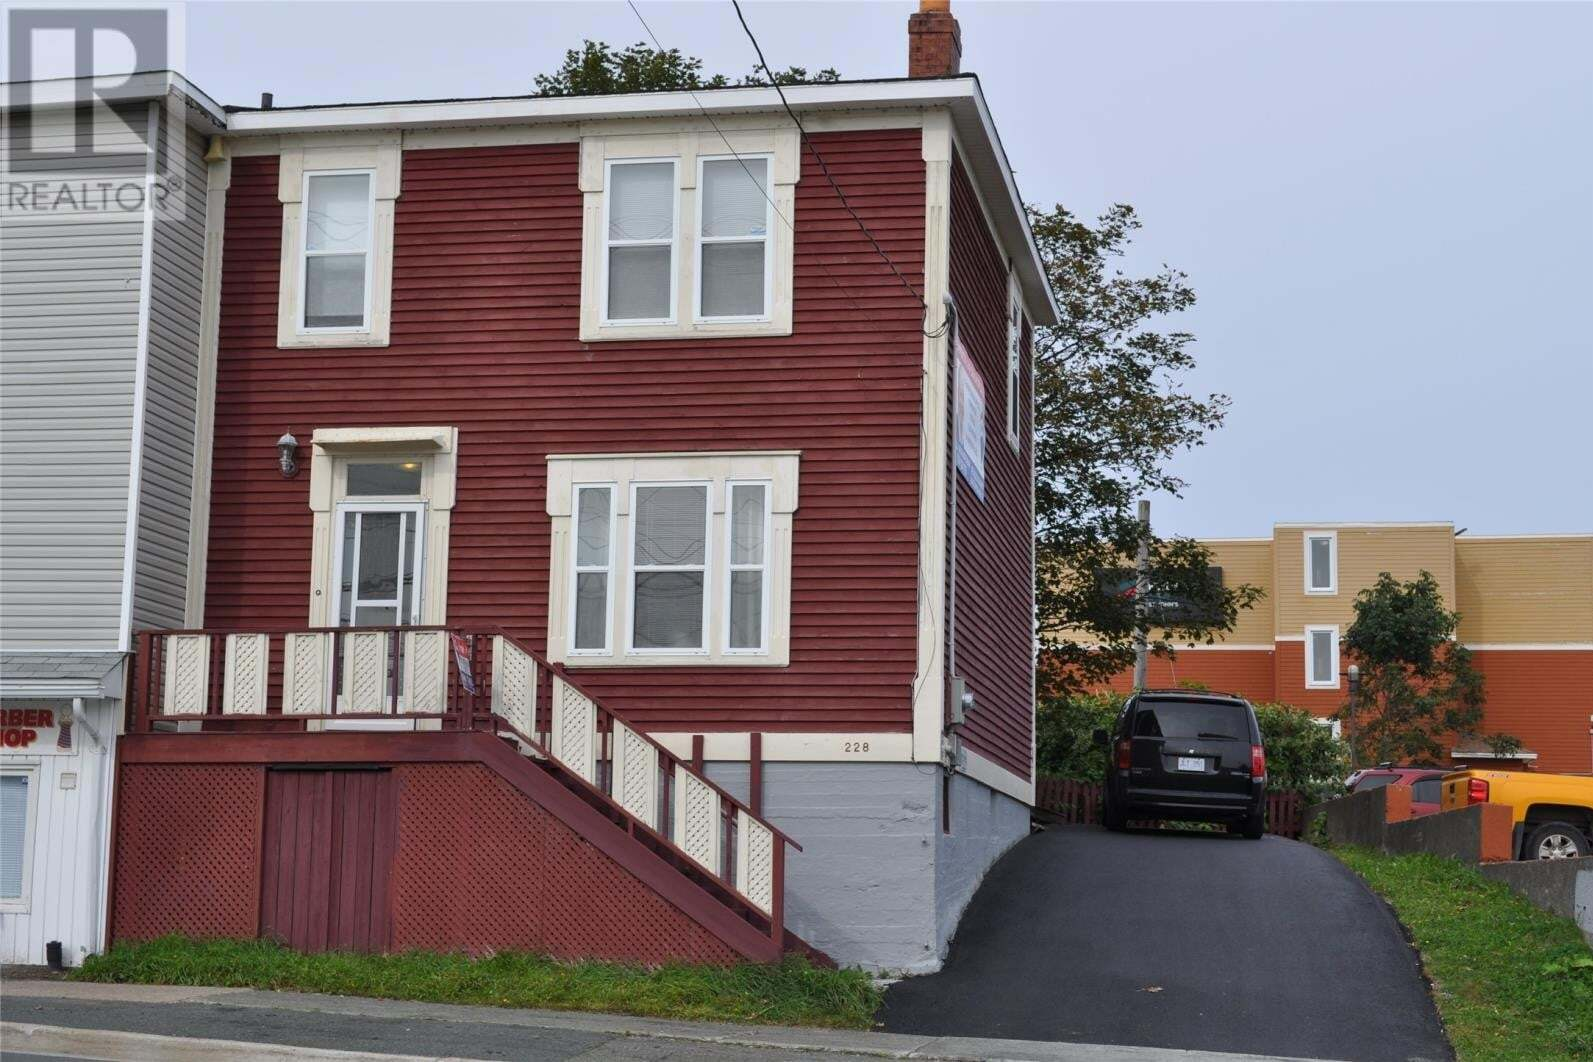 Commercial property for sale at 228 Lemarchant Rd St. John's Newfoundland - MLS: 1217100